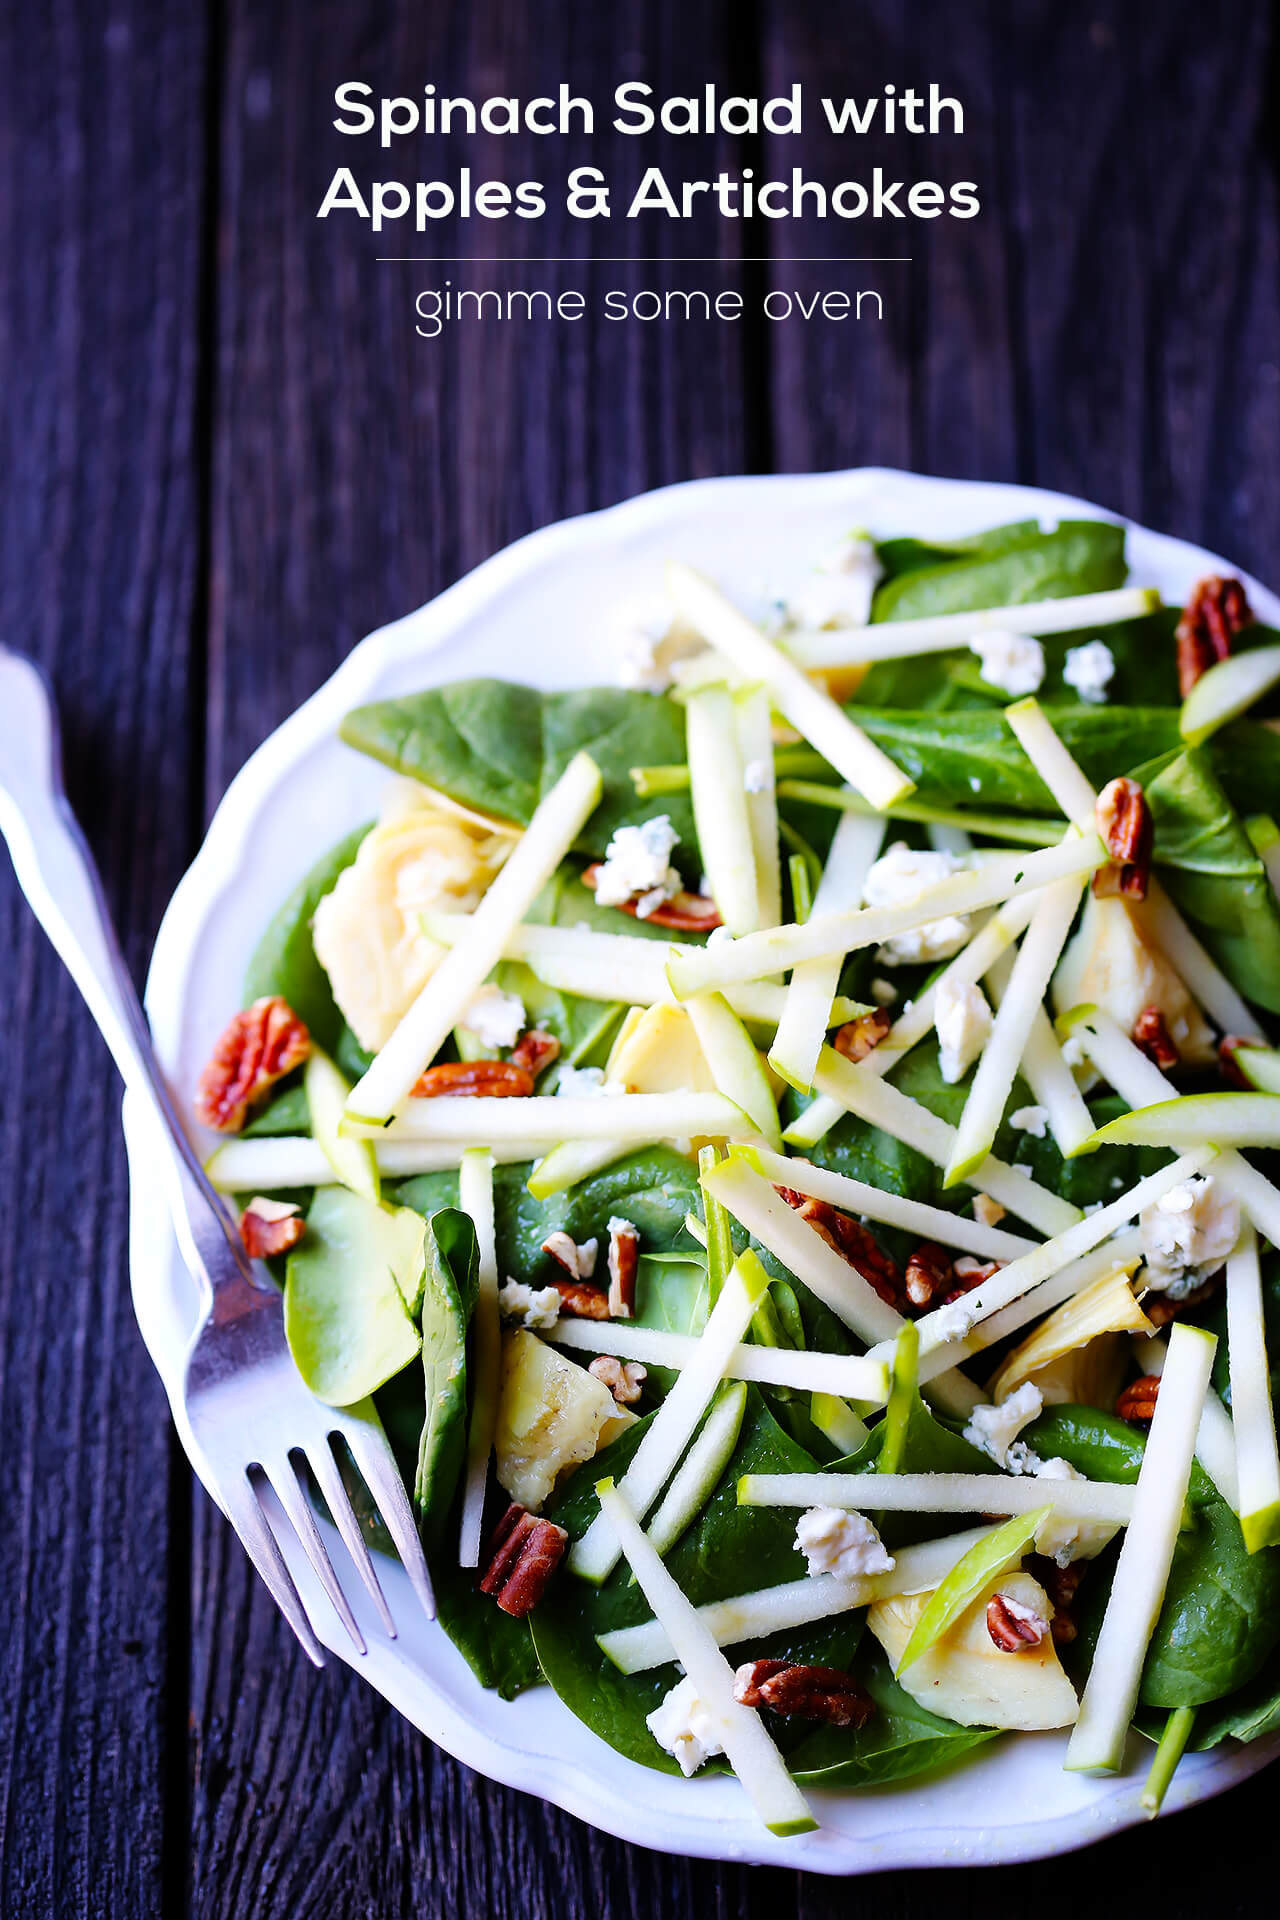 Spinach Salad with Apples and Artichokes